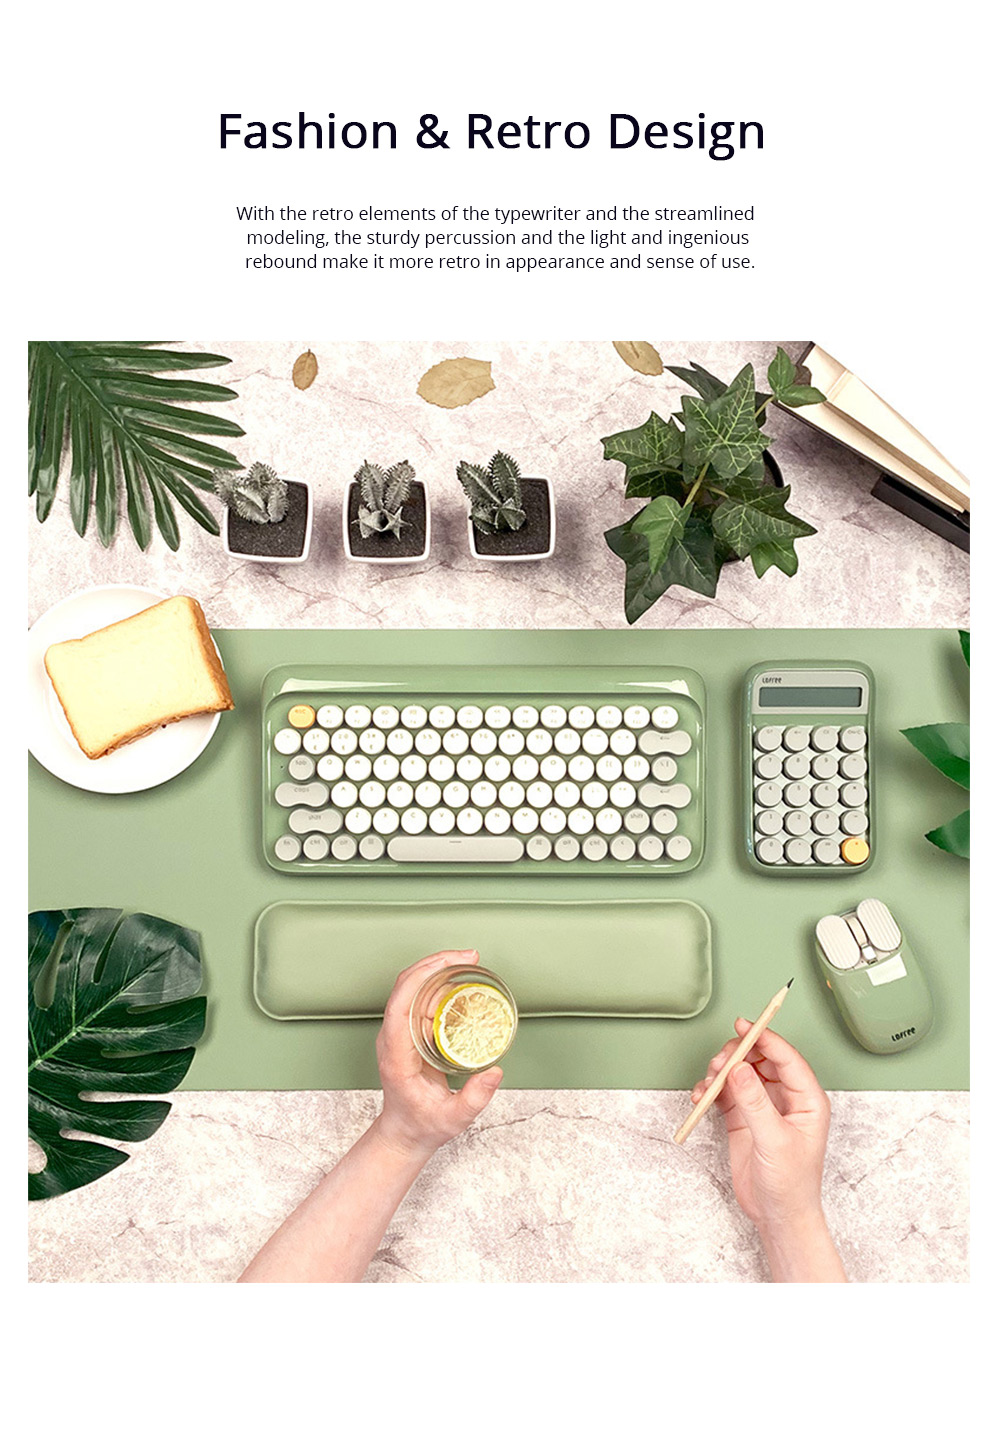 LOFREE 76 Keys Mouse Pad Set Mechanical Keyboard and Mouse with Ergonomic Wrist Rest Exquisite Calculator 4000mAh Lithium Battery 1